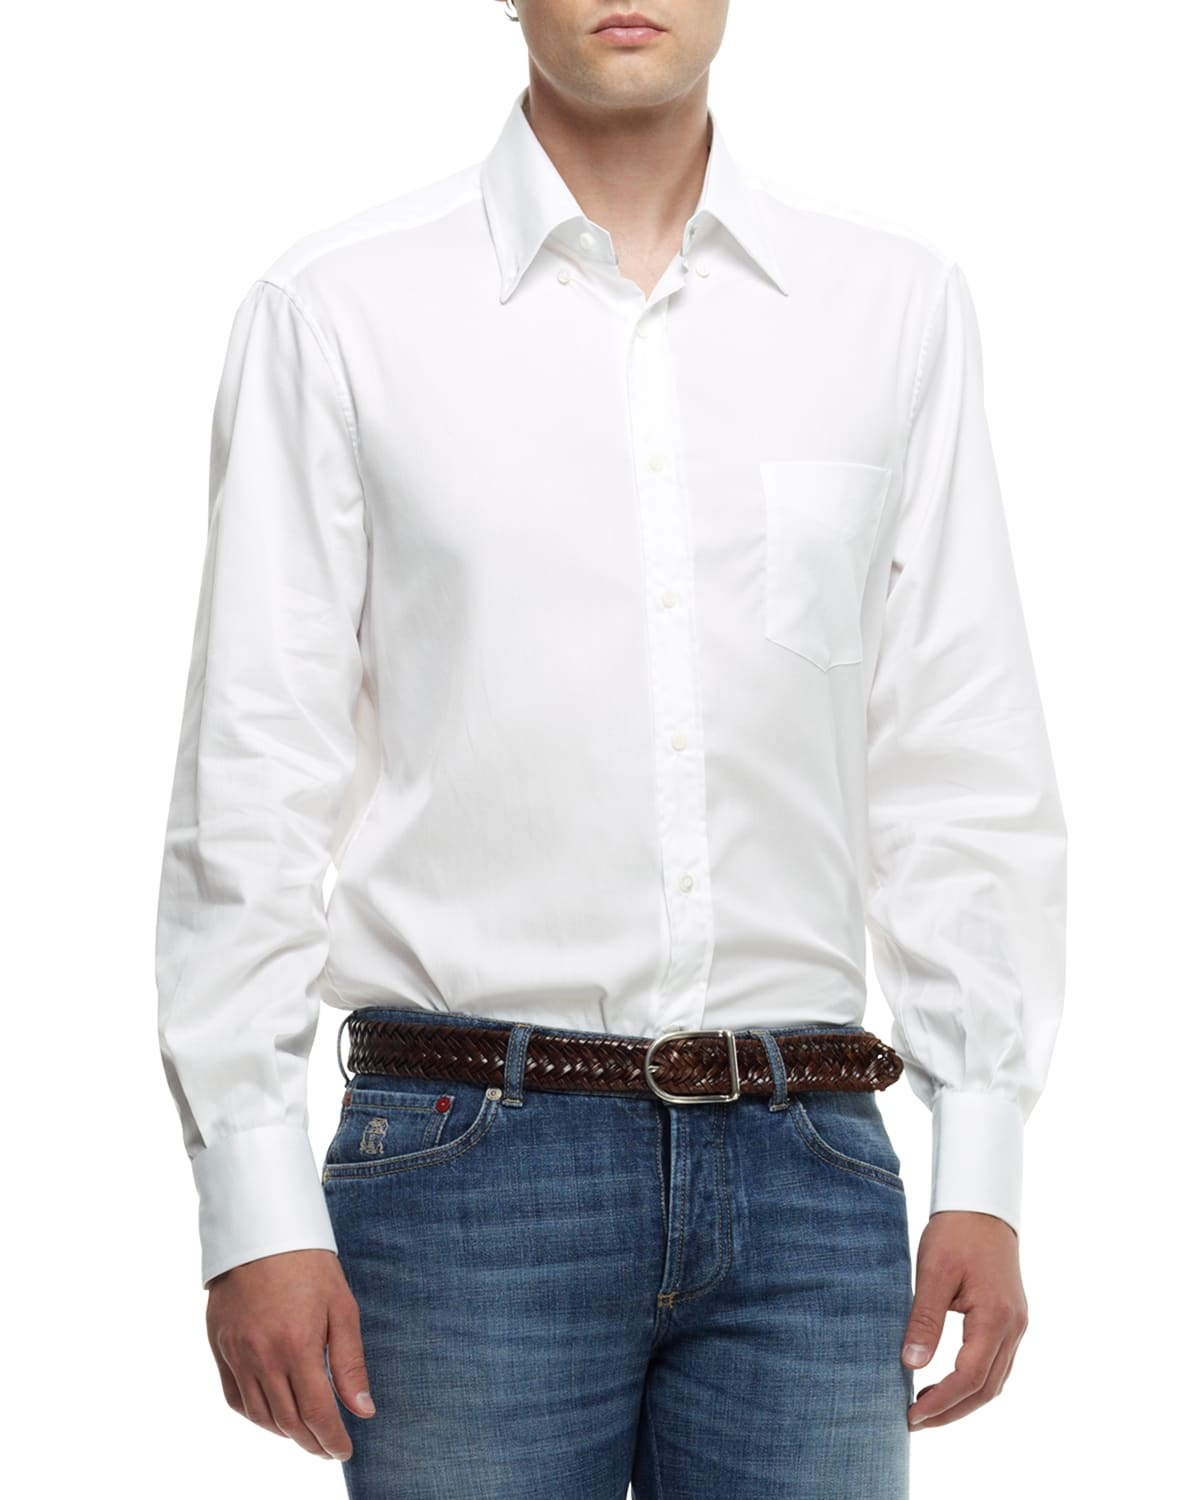 Men's Basic Fit Solid Sport Shirt with Button-Down Collar